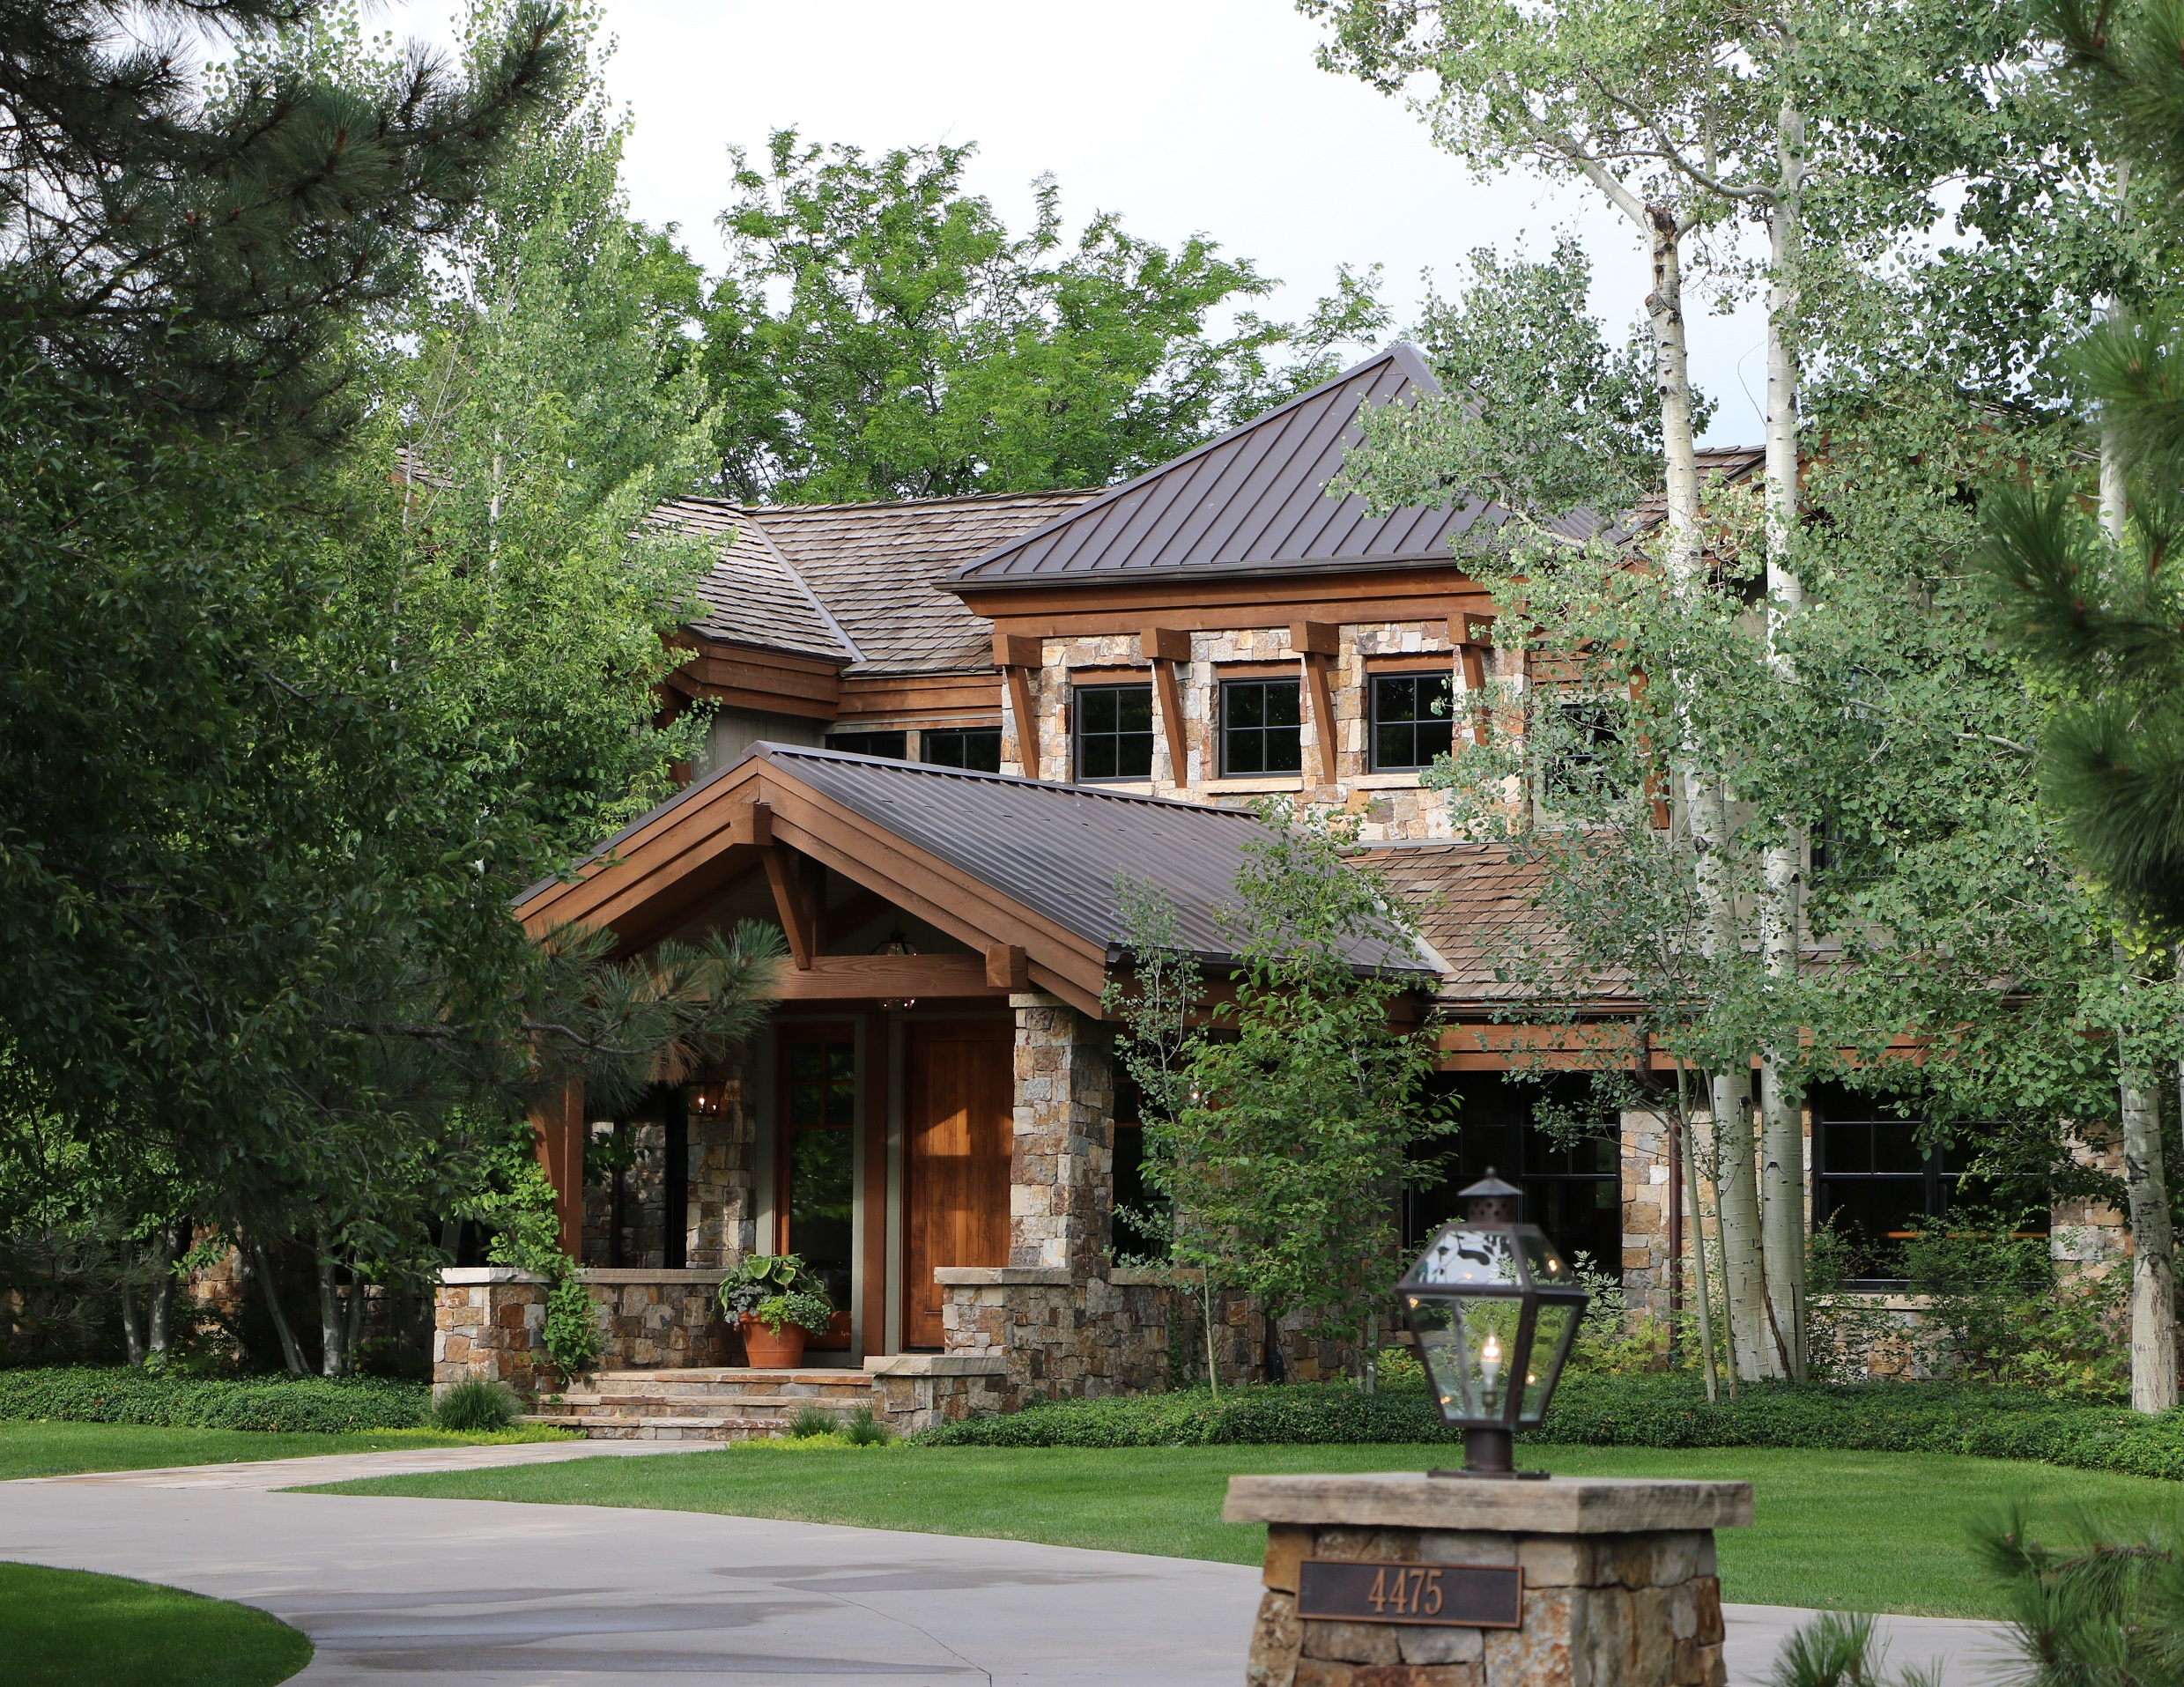 4475 S Downing St, Englewood, CO 80113